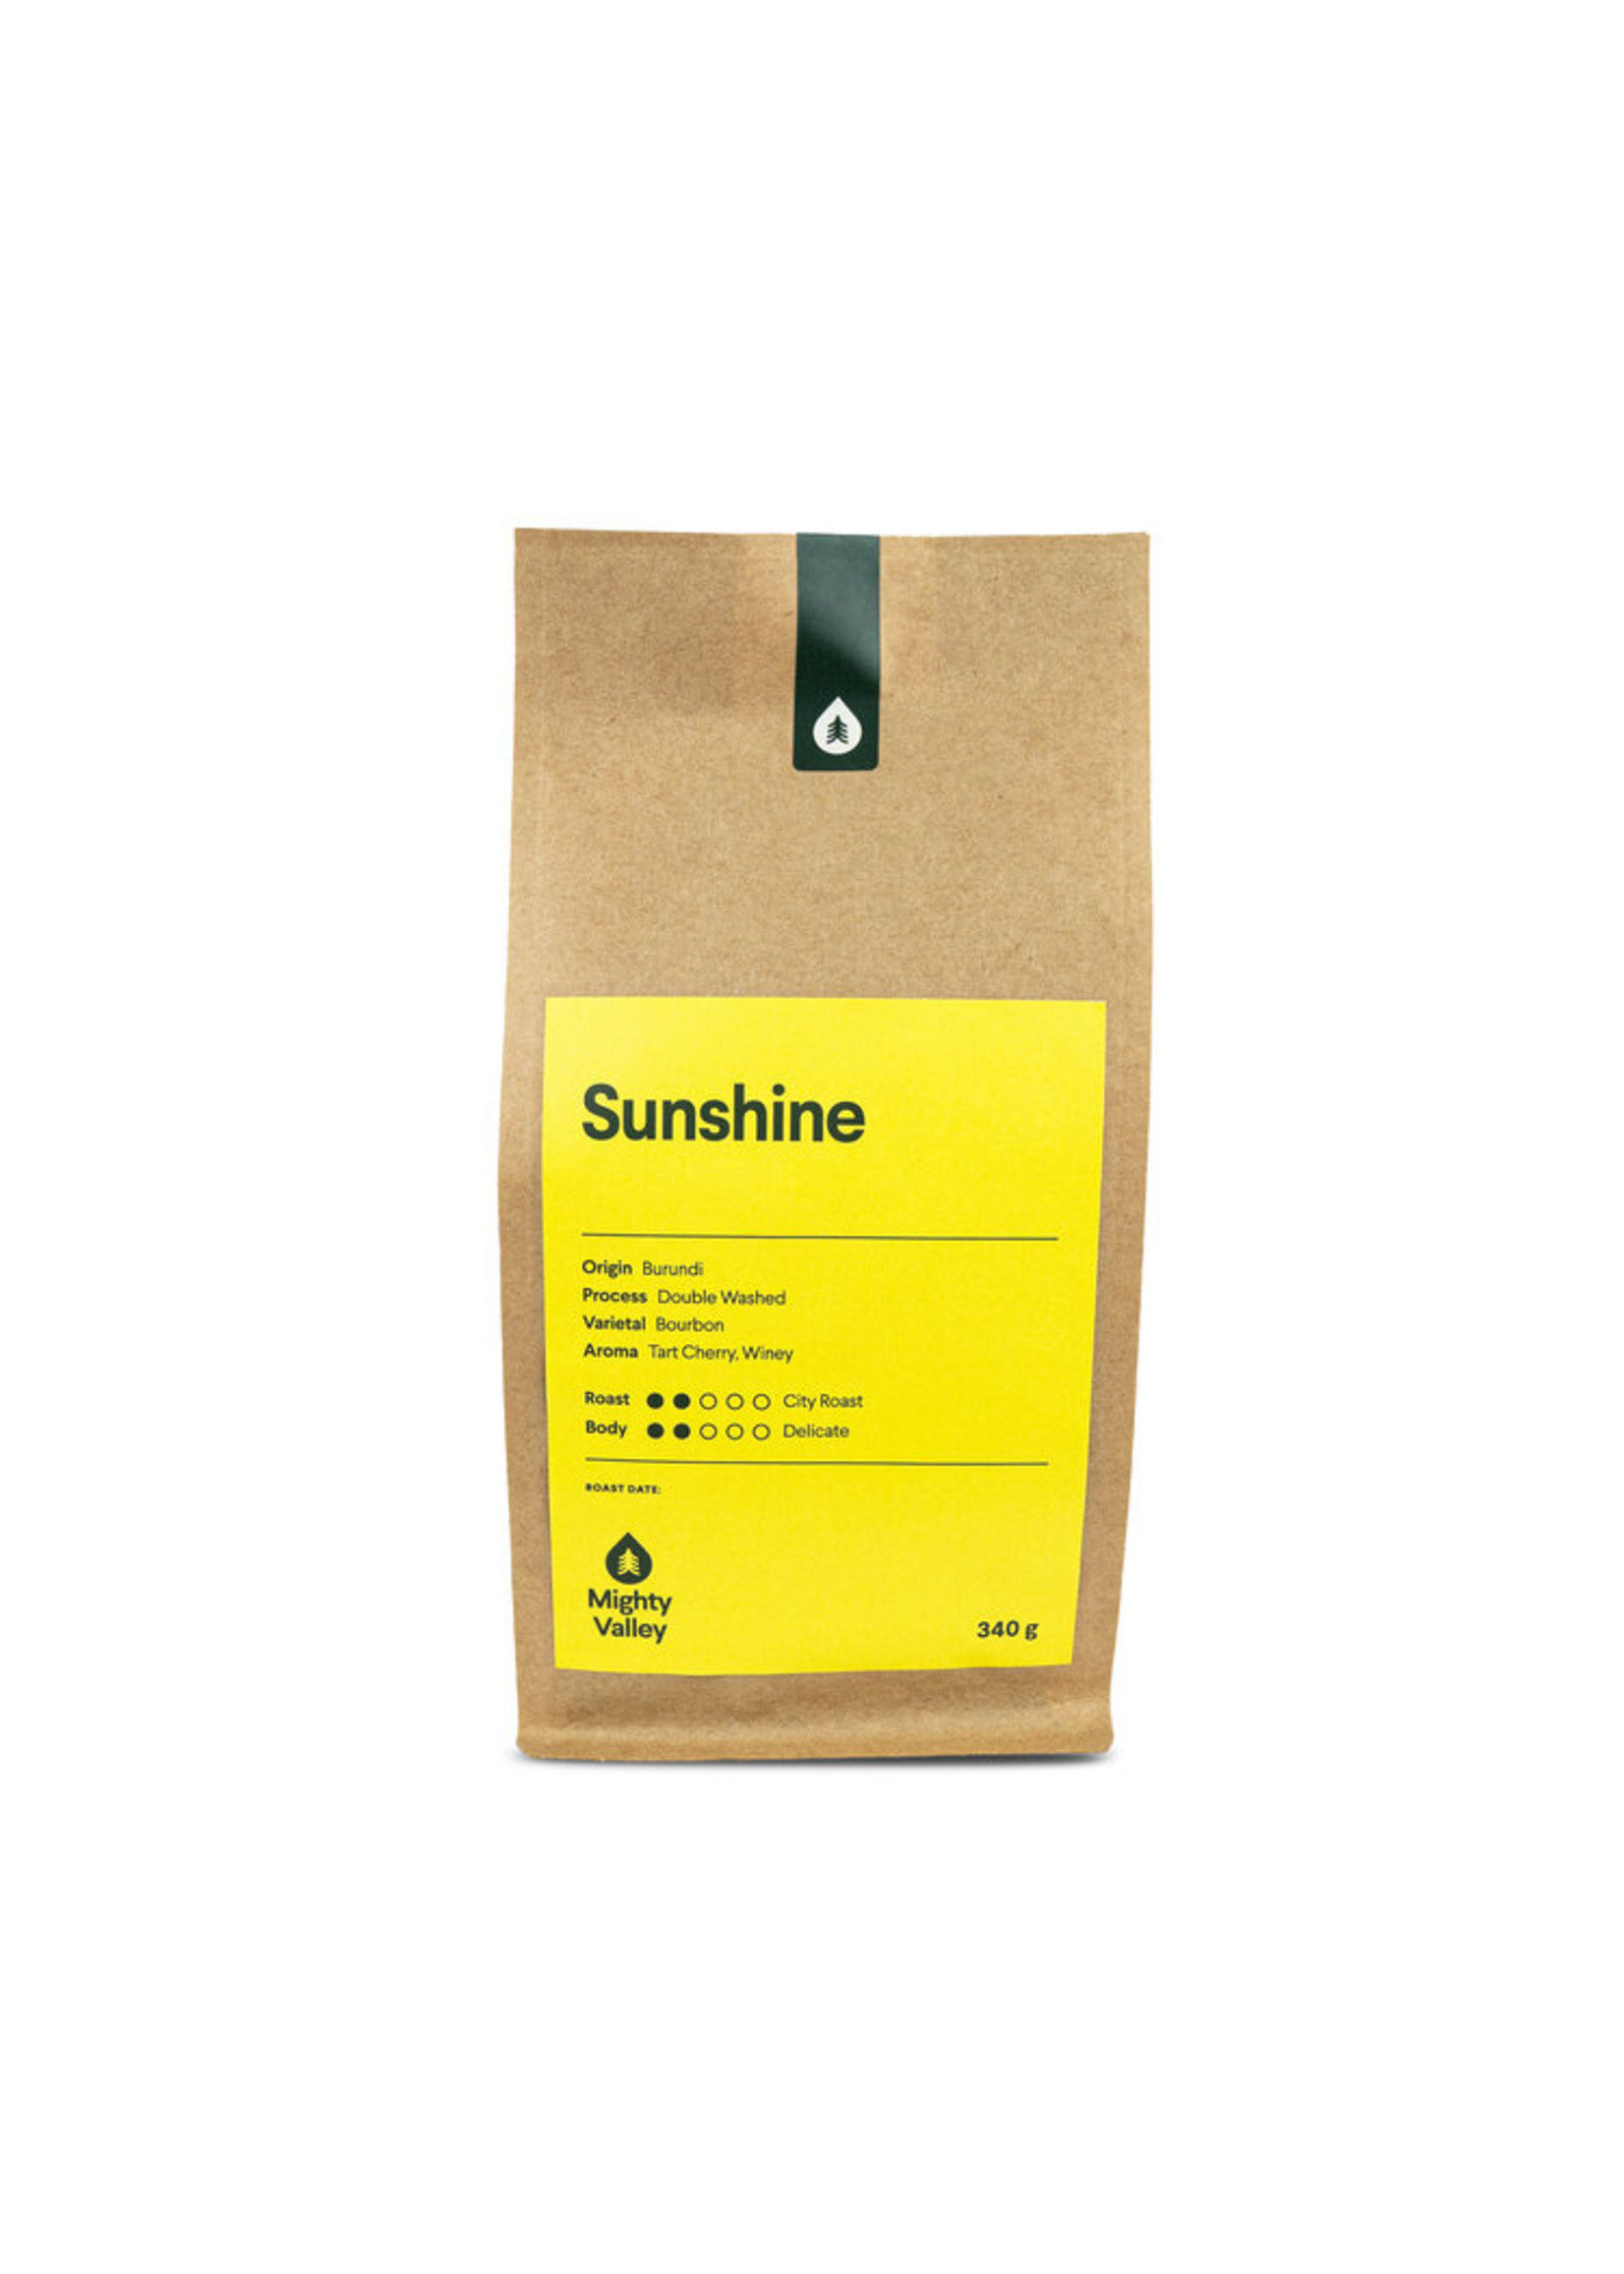 Mighty Valley Mighty Valley Whole Bean Coffee - Sunshine Blend 340 gram